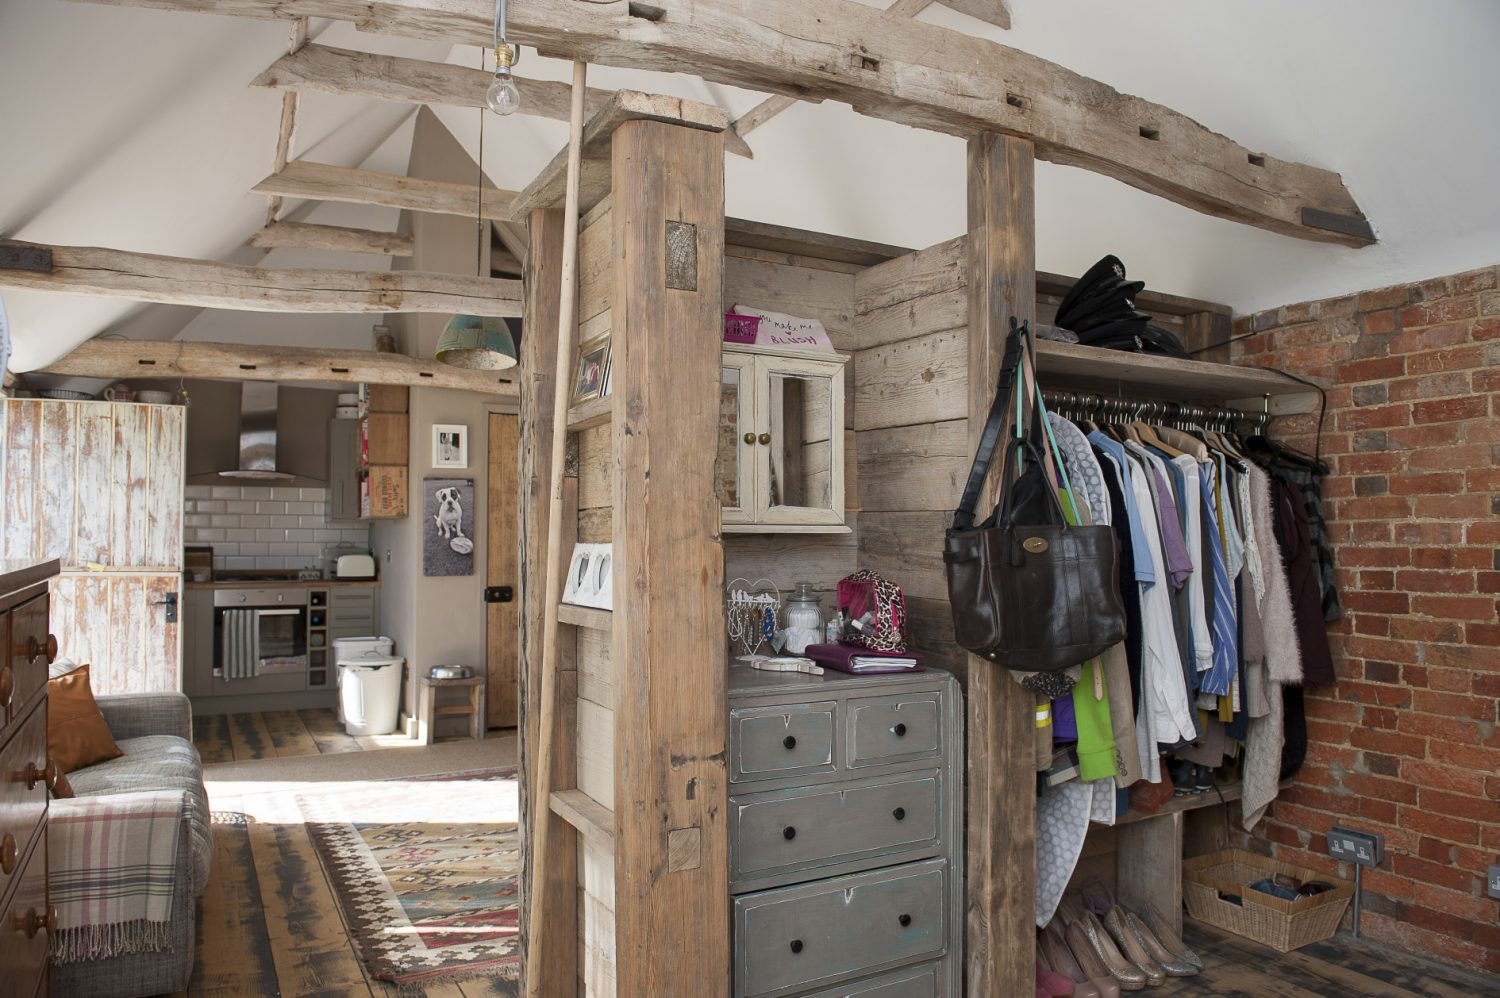 One of the outhouses at Brick House Farm is home to the couple's daughter. The space was designed by Rob in a 'more masculine style', according to Caroline, or 'modern rustic', and incorporates salvaged wood from around the farm. A kitchen corner, sleeping area and living room are cleverly combined in an open-plan arrangement